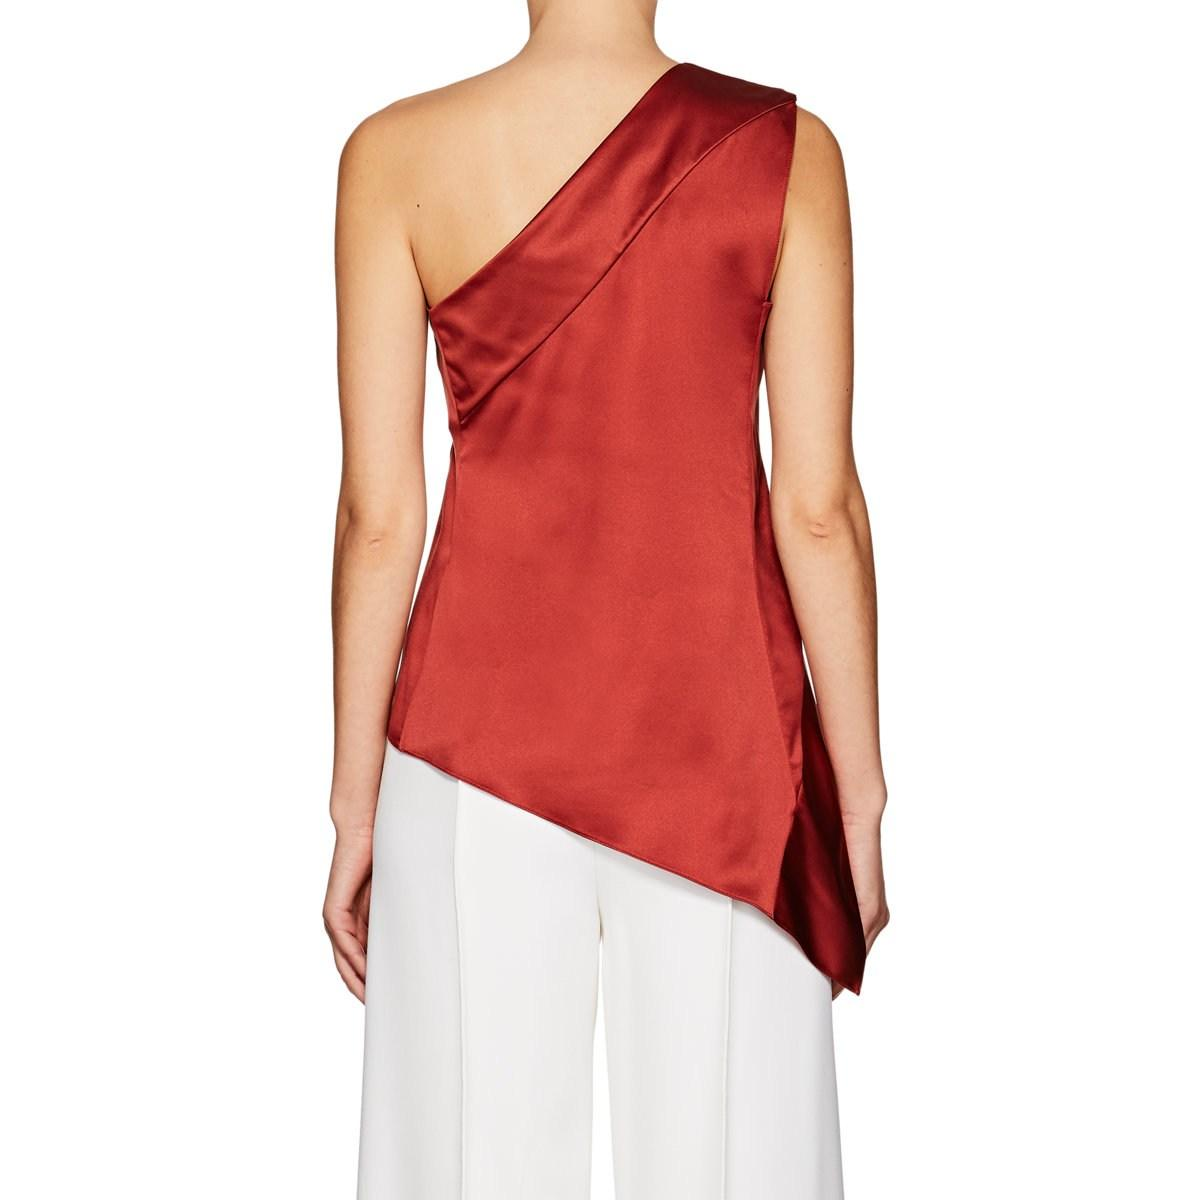 8c9730801ceb4 Narciso Rodriguez - Red Silk Satin One-shoulder Blouse - Lyst. View  fullscreen